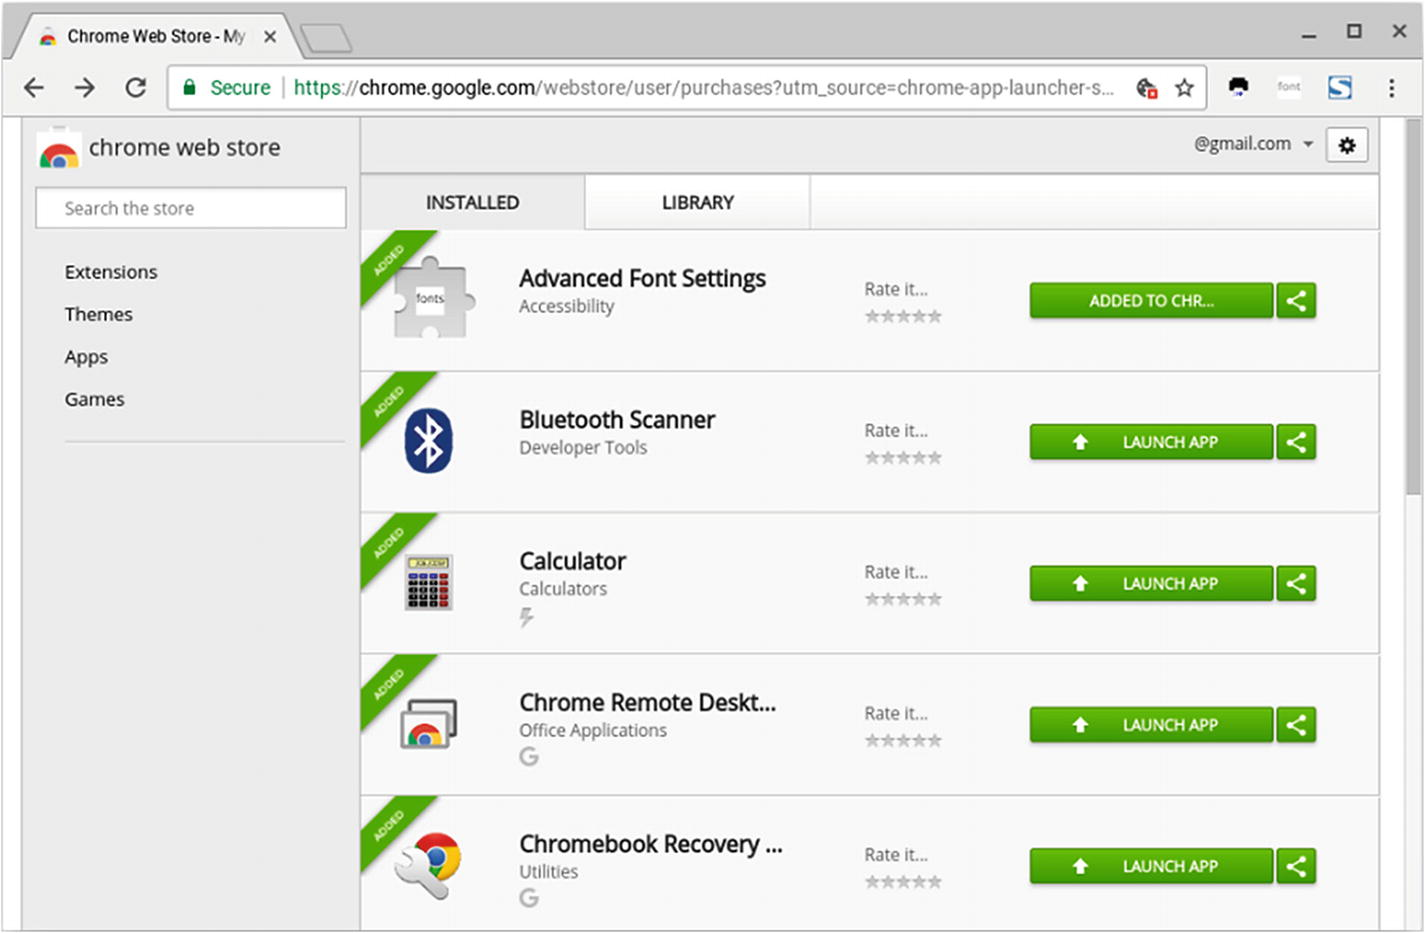 Managing Chrome Apps and Extensions   SpringerLink